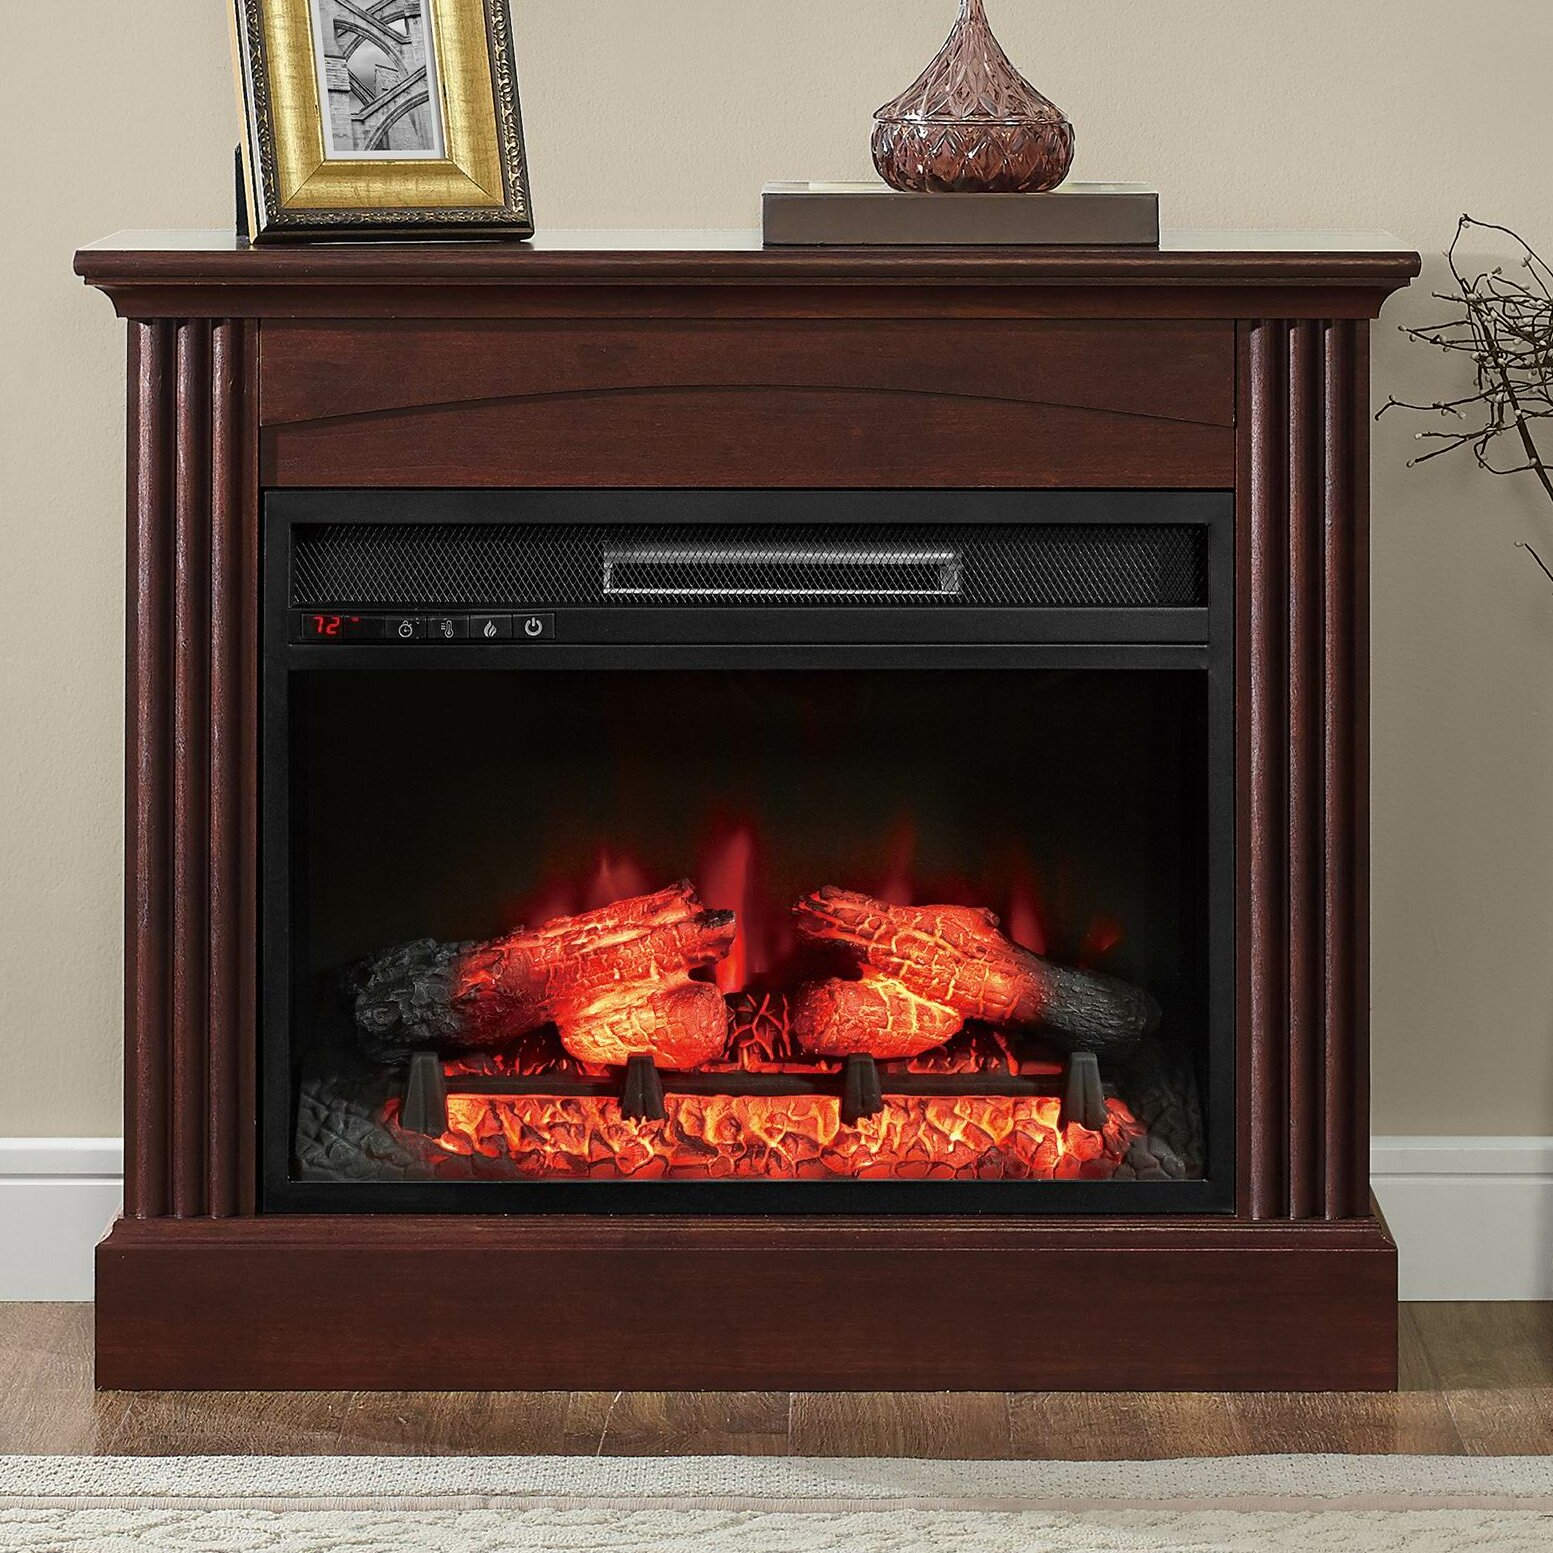 Whalen Furniture Glaston Electric Fireplace Amp Reviews Wayfair . - Electric Fireplaces Hot Tubs Fireplaces Patio Furniture Heat